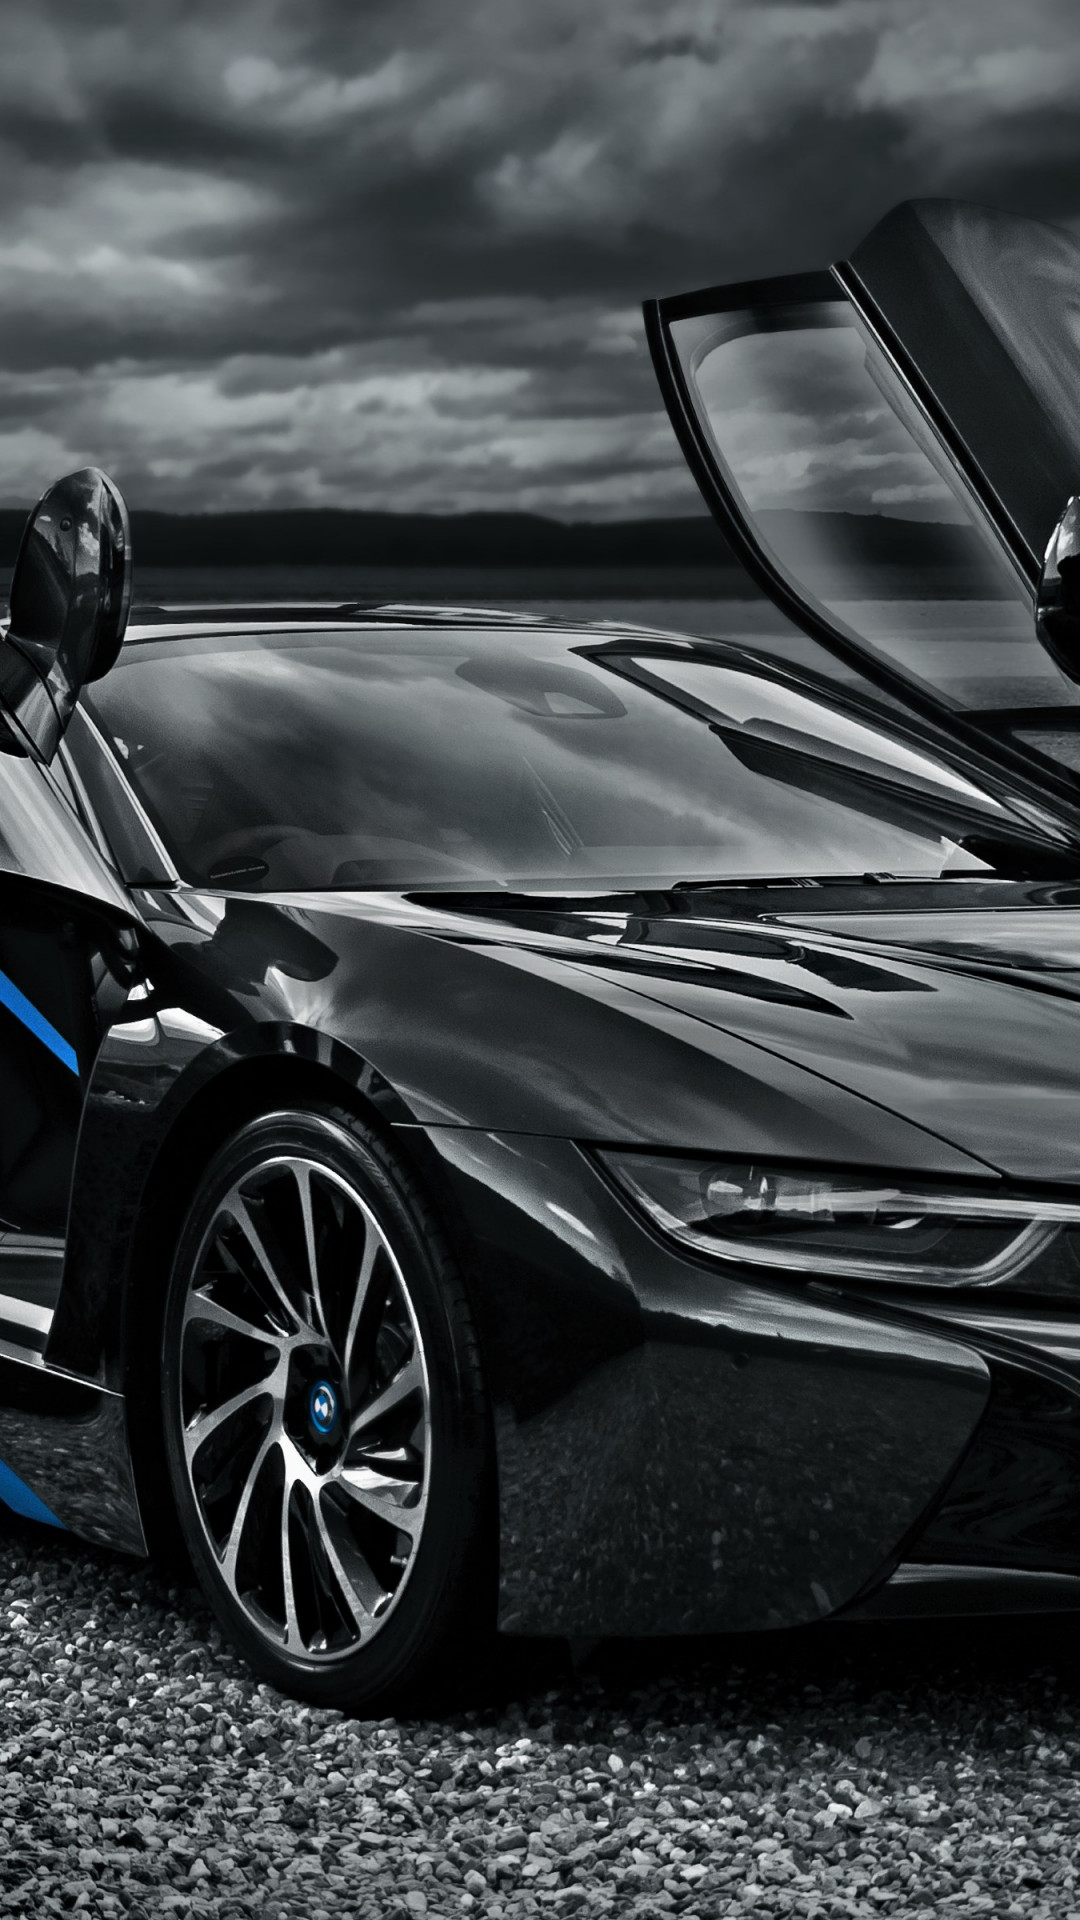 BMW i8 hybrid car wallpaper 1080x1920